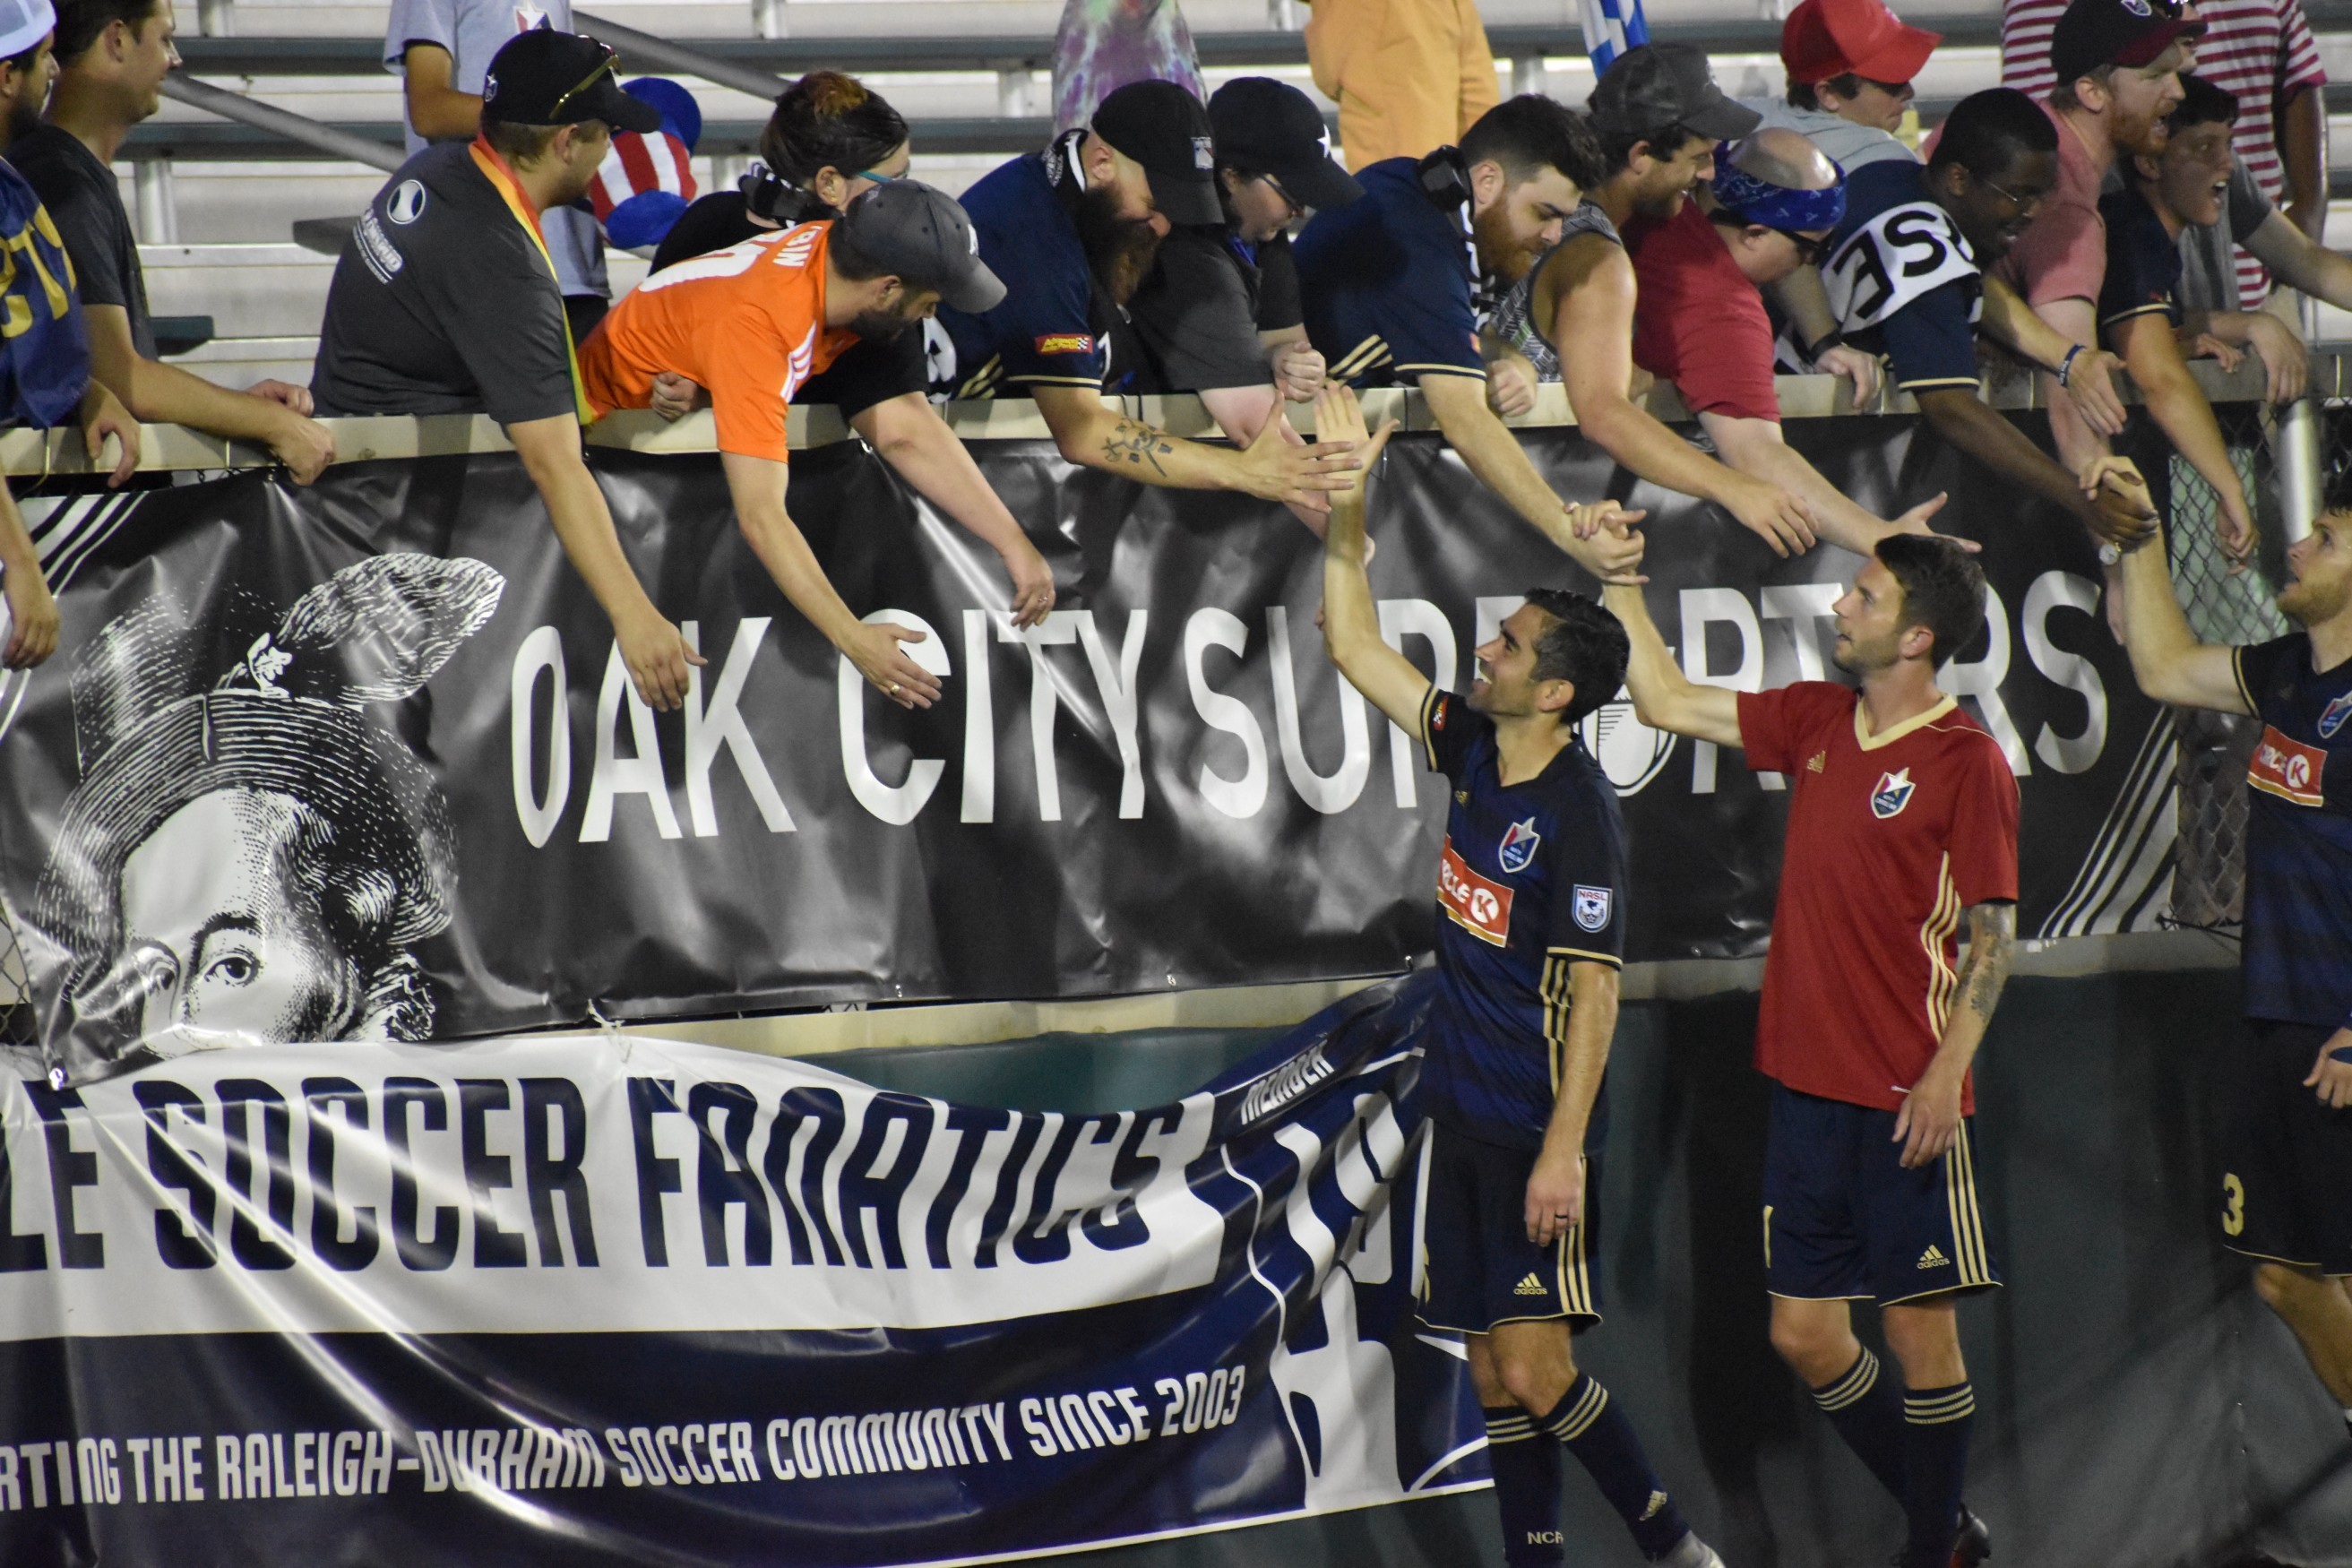 From Railhawks to Dead Whales: A short history of the Oak City